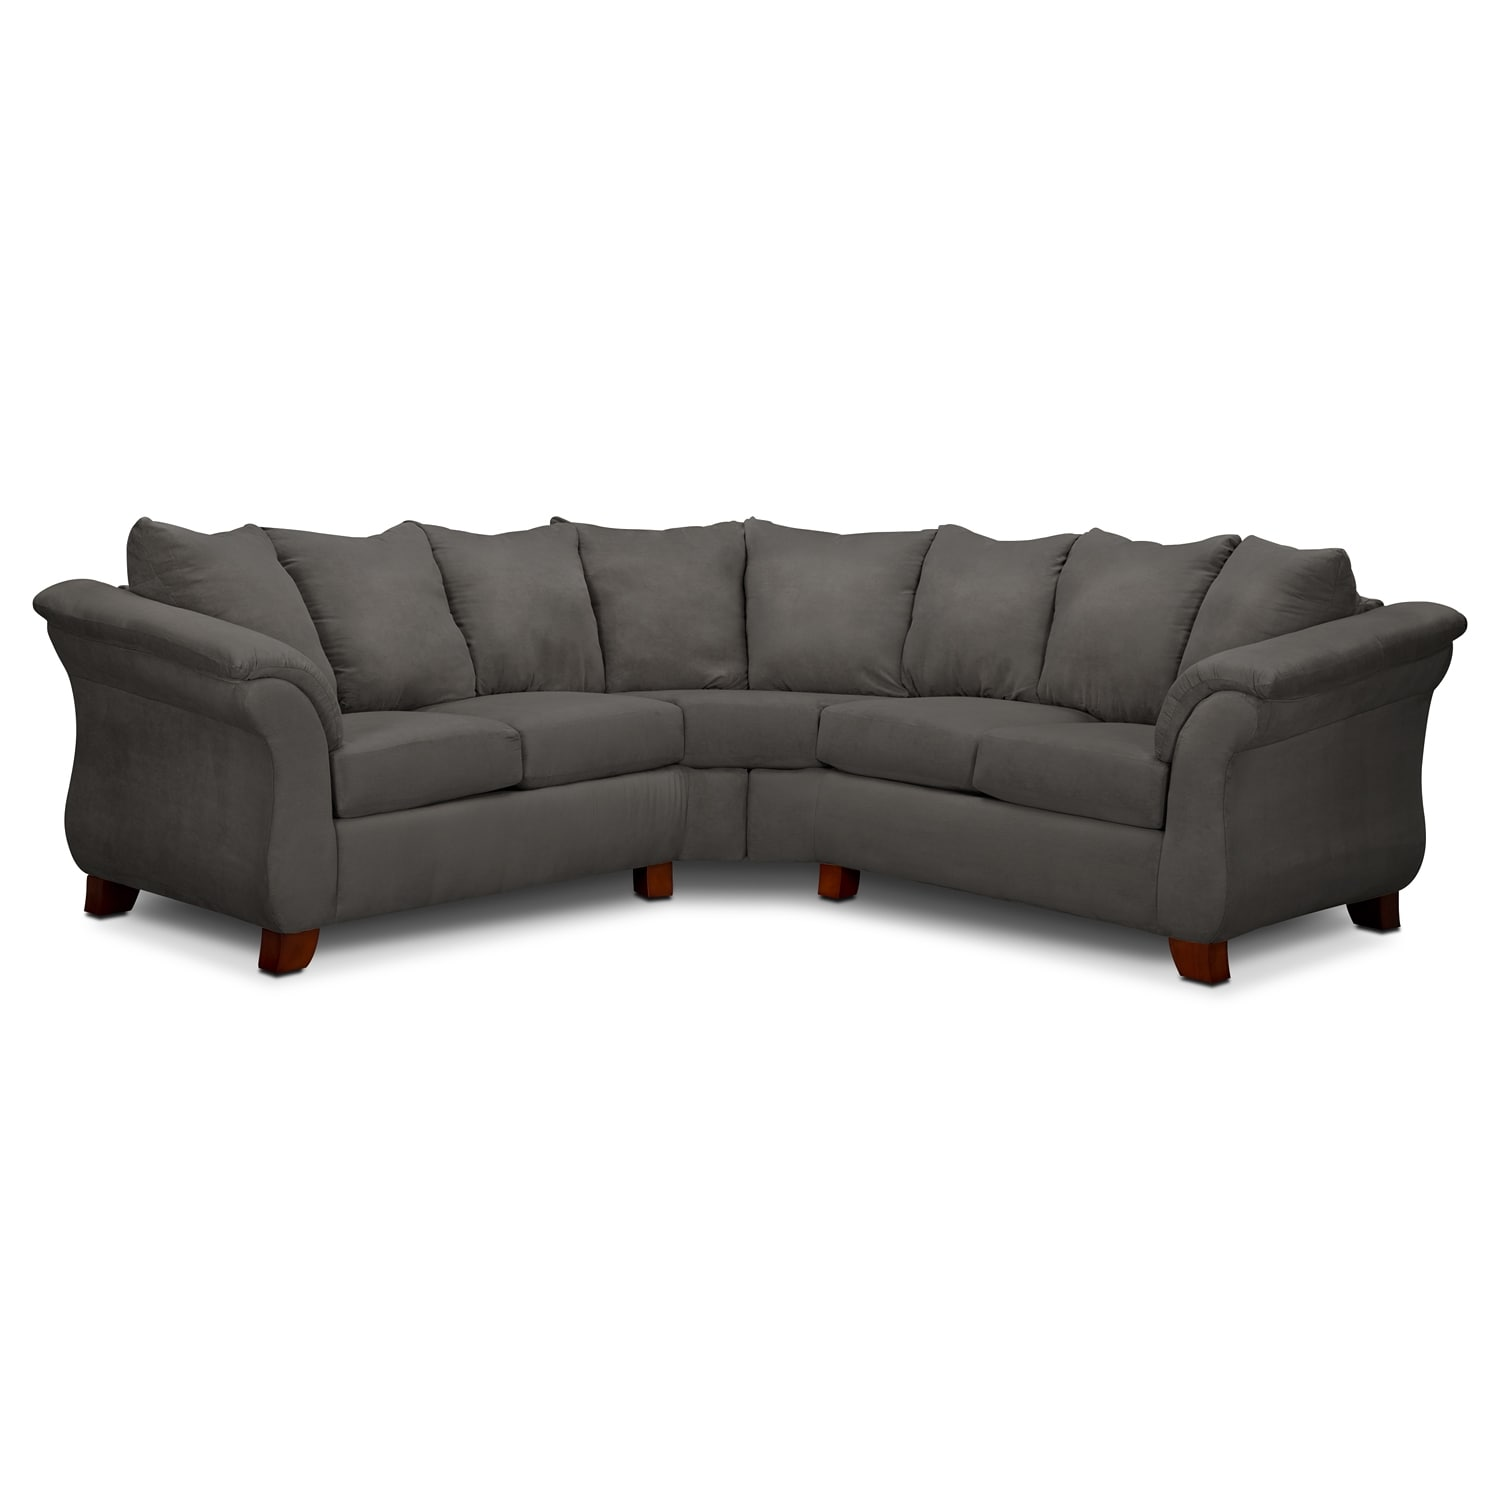 Adrian graphite ii 2 pc sectional value city furniture for Sectional sofa or two sofas